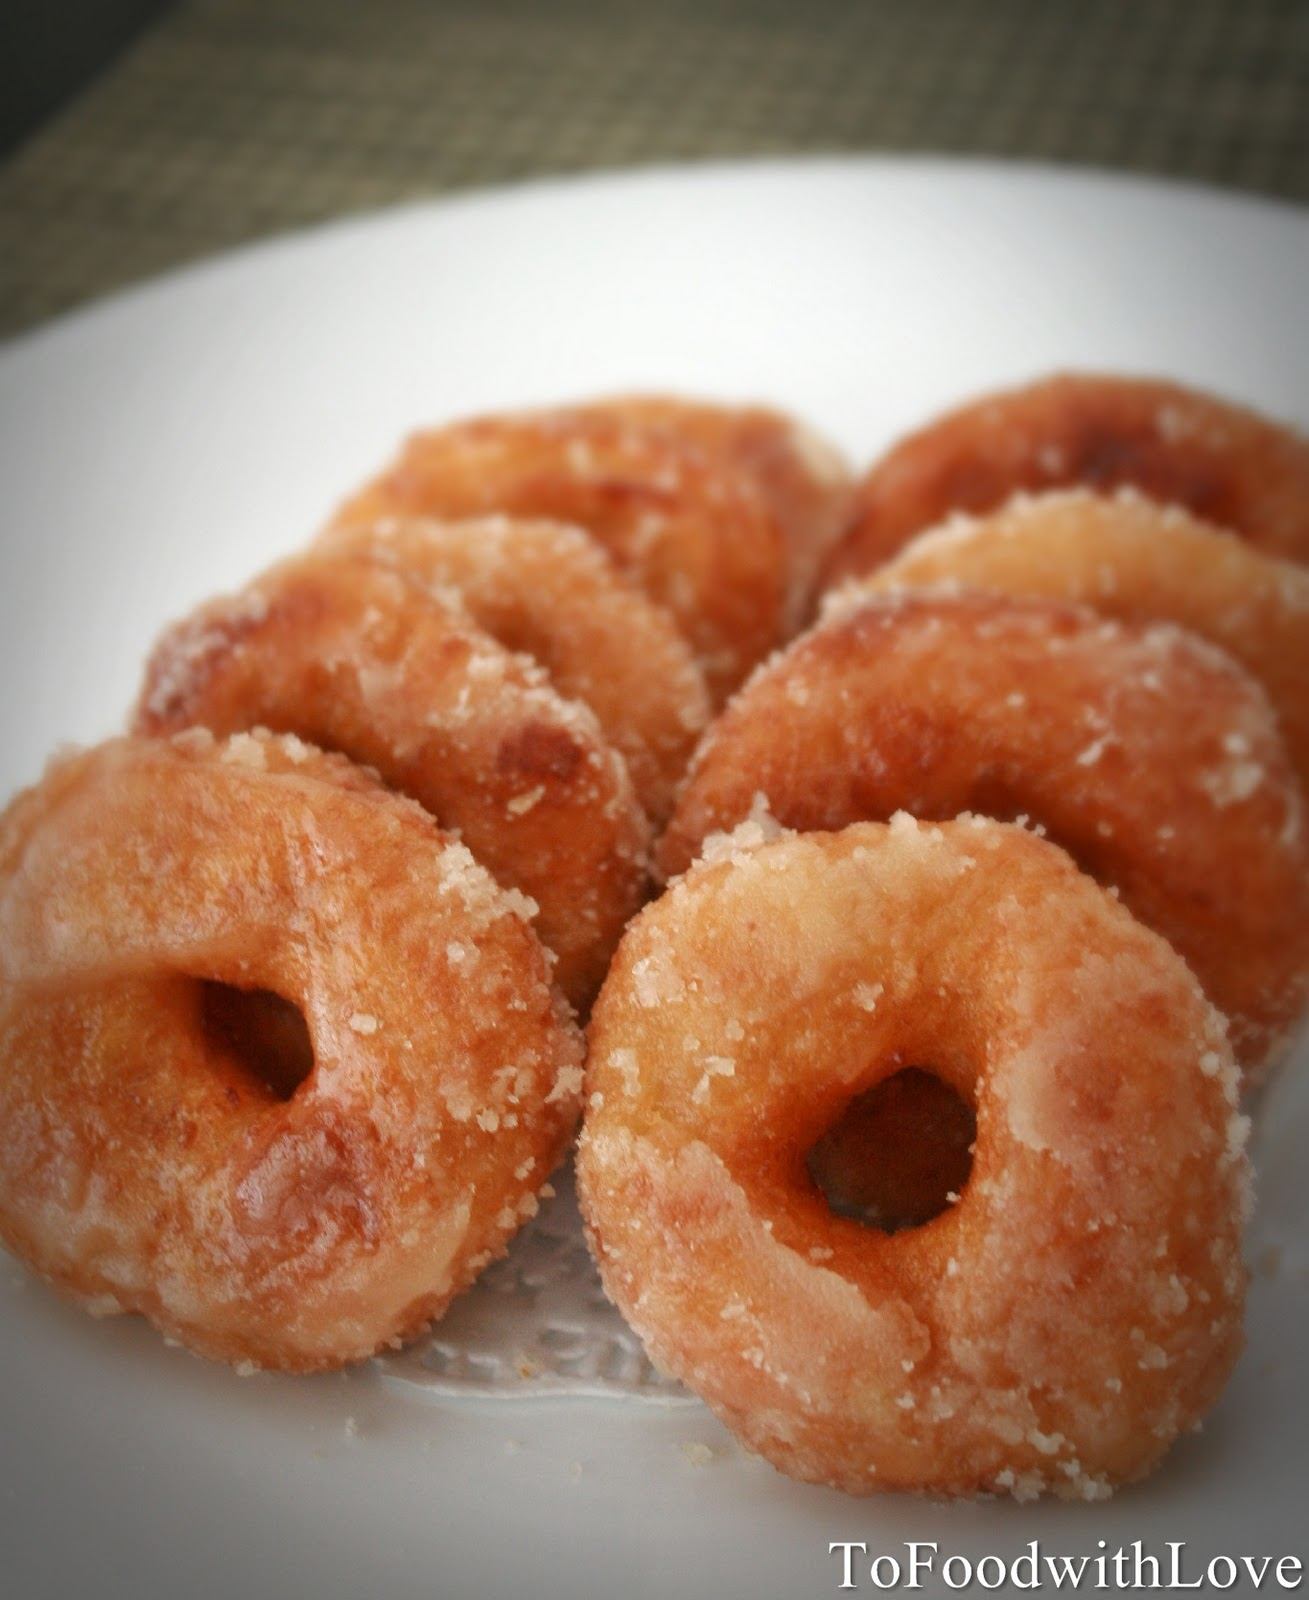 To Food with Love: Kuih Keria (Sweet Potato Donuts)